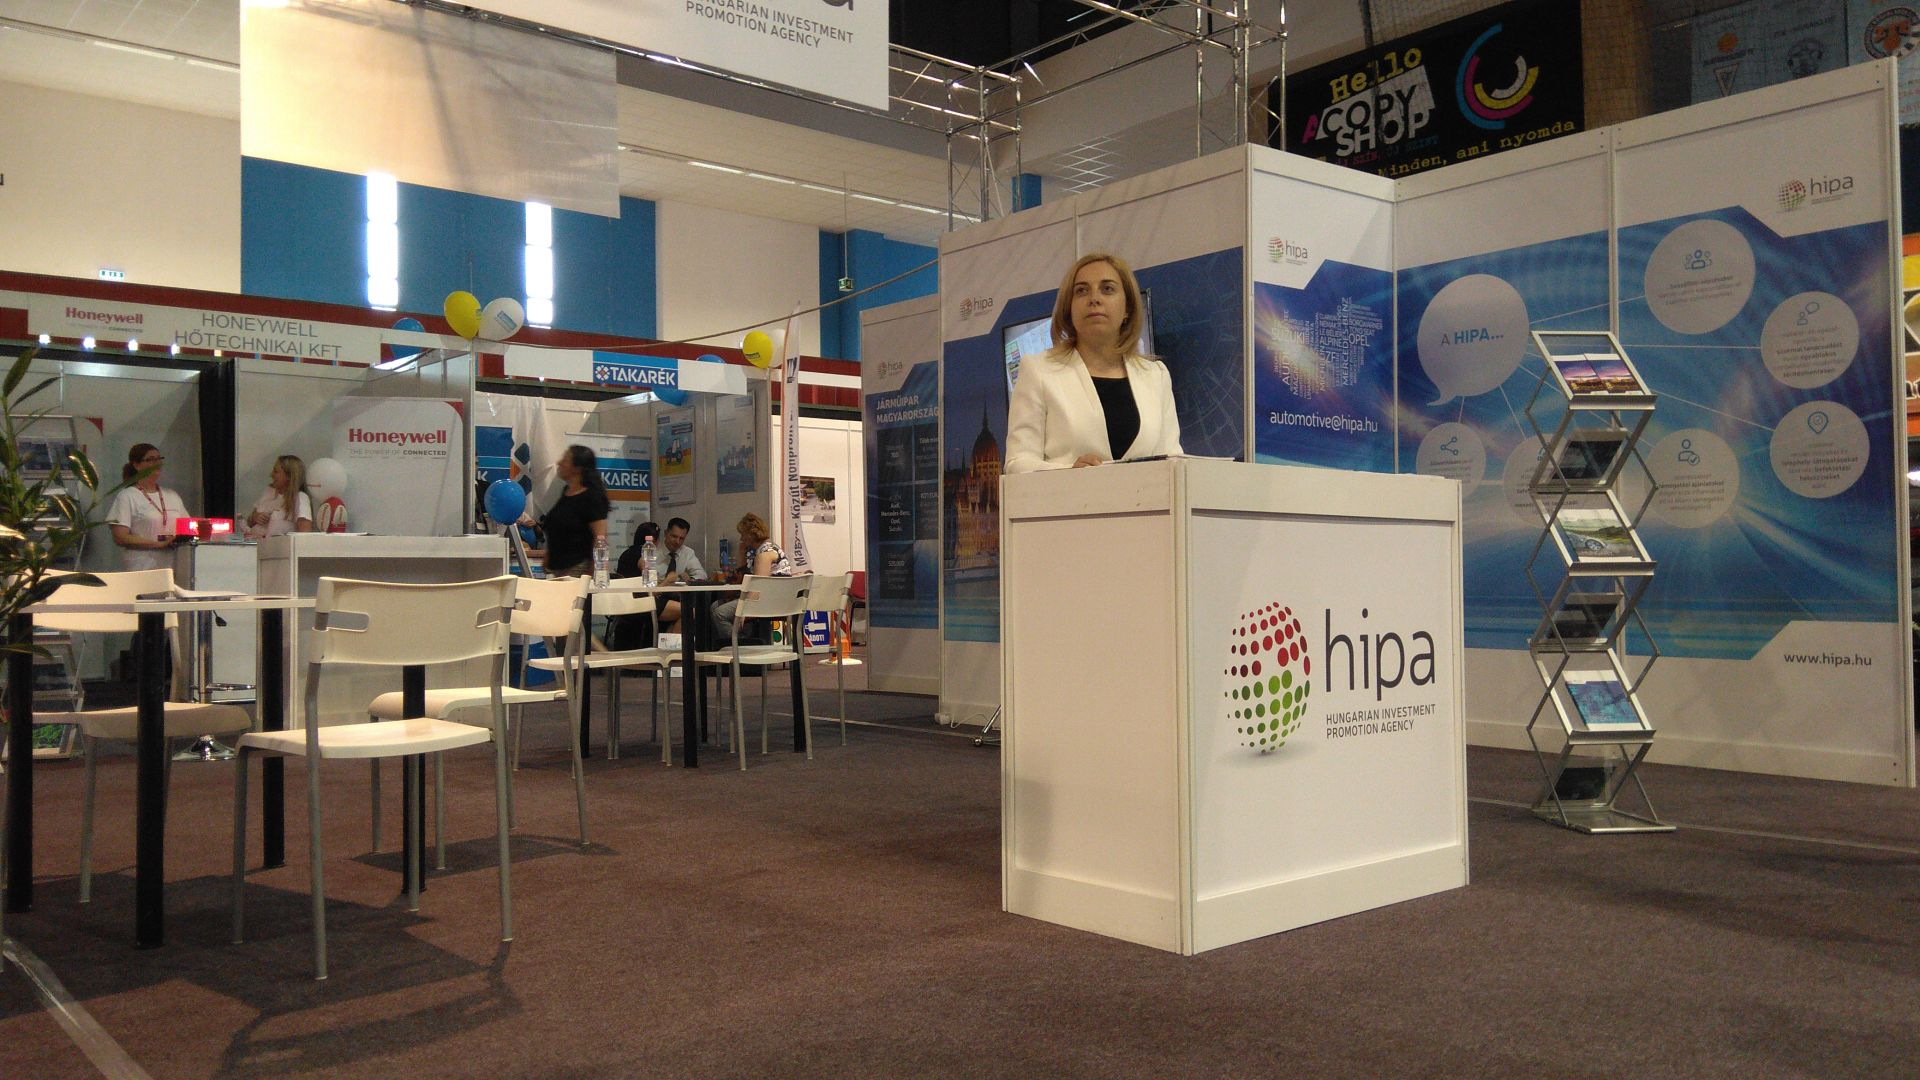 The HIPA booth at the expo